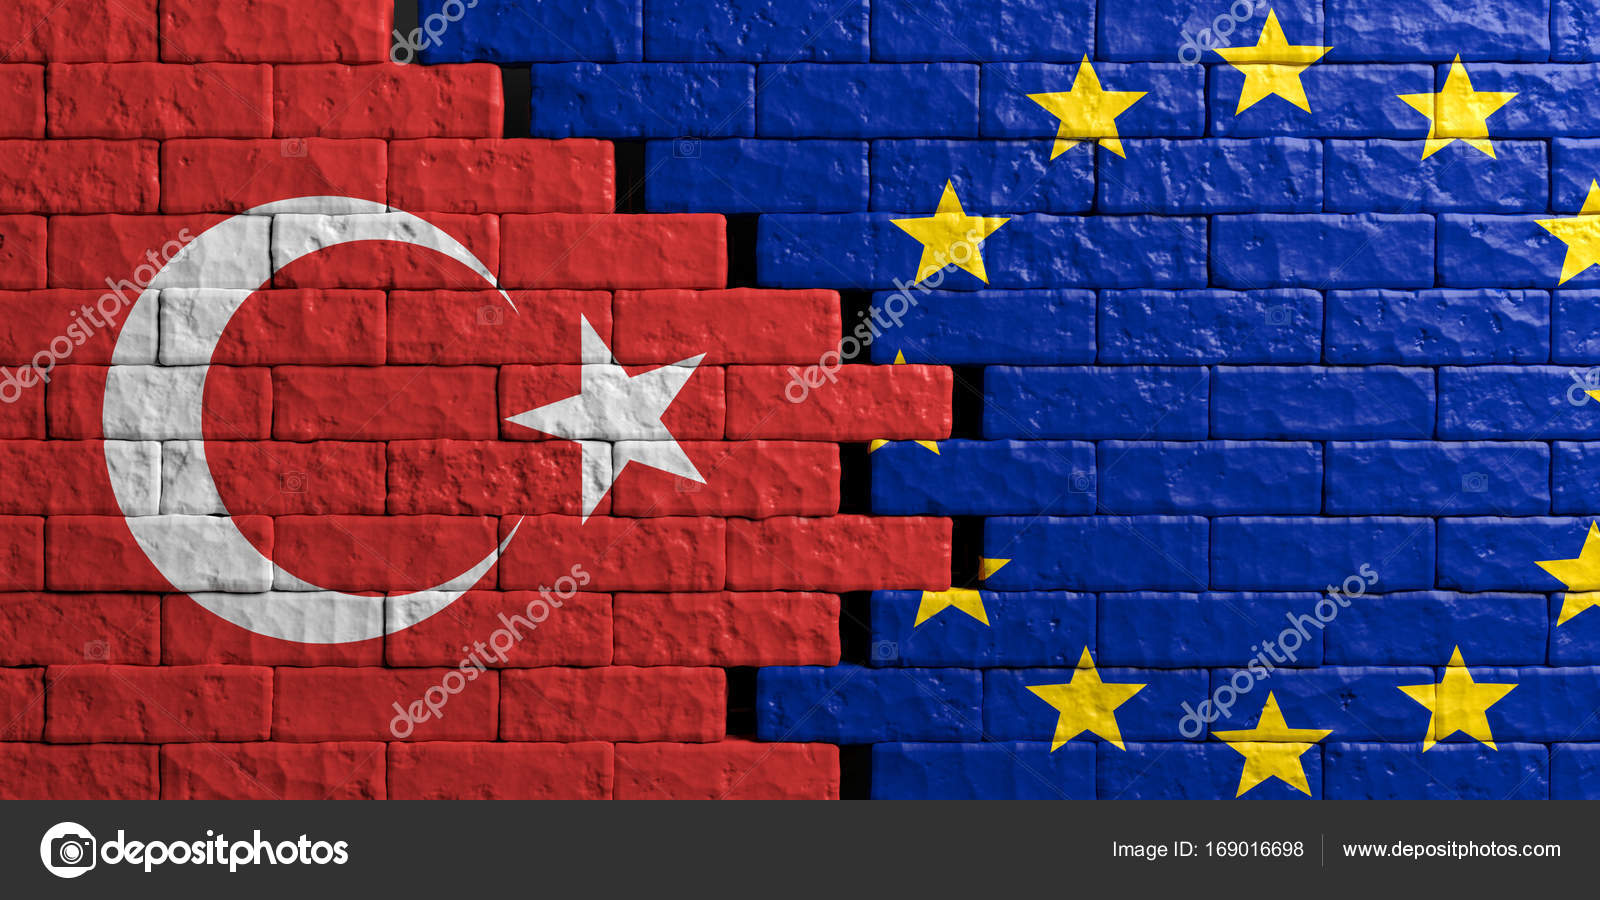 European Union And Turkey Flag, Brick Wall Background - Turkey Eu Relations , HD Wallpaper & Backgrounds